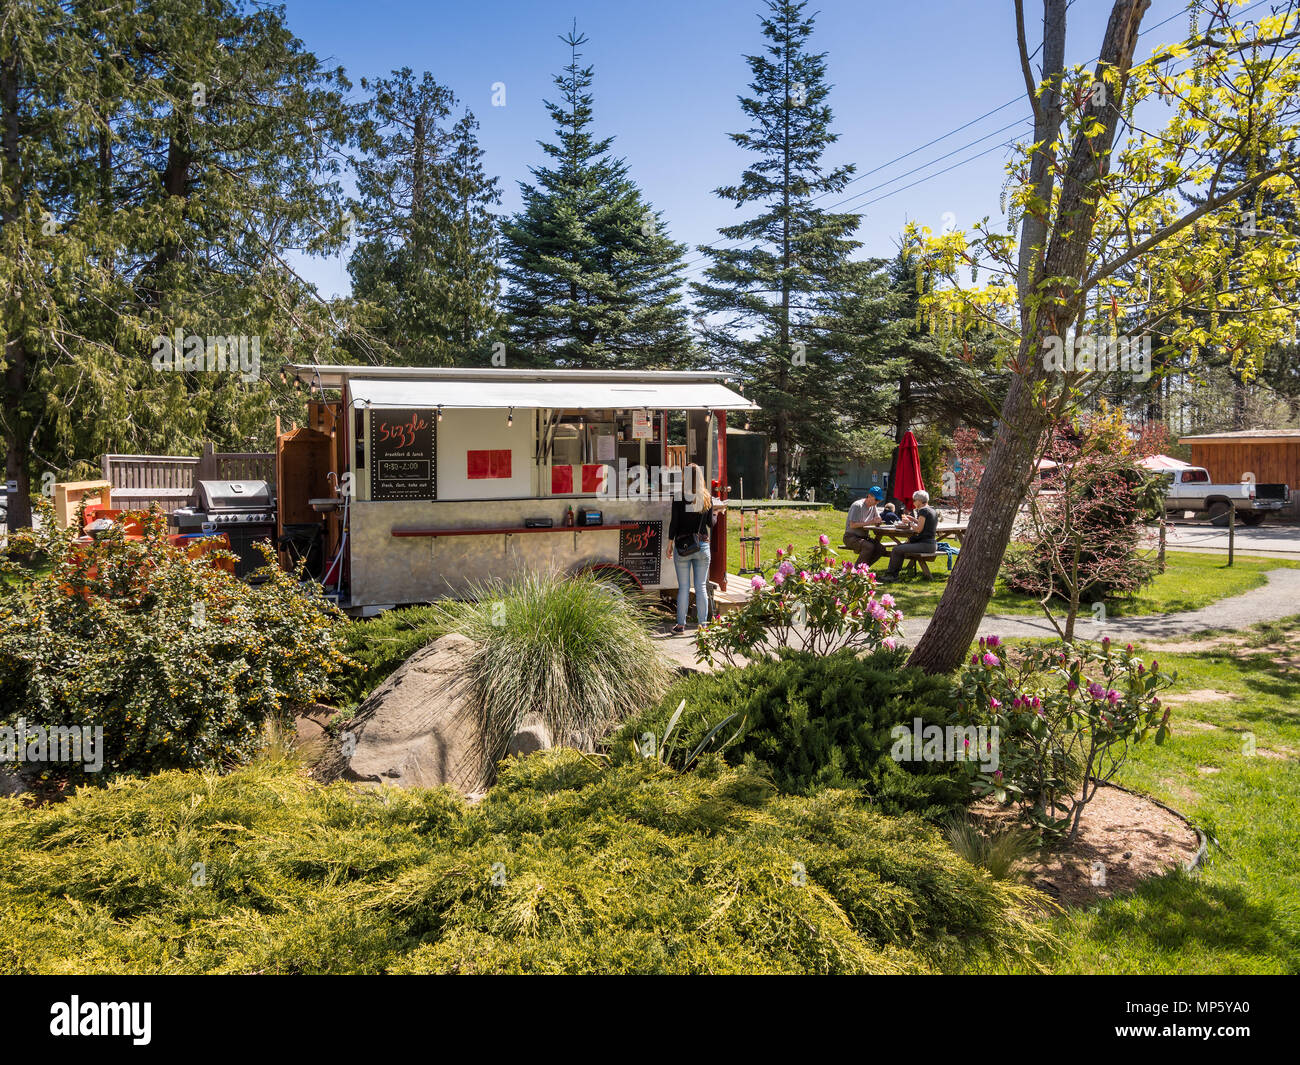 'Sizzle' outdoor food kitchen, Hornby Island, BC, Canada. - Stock Image